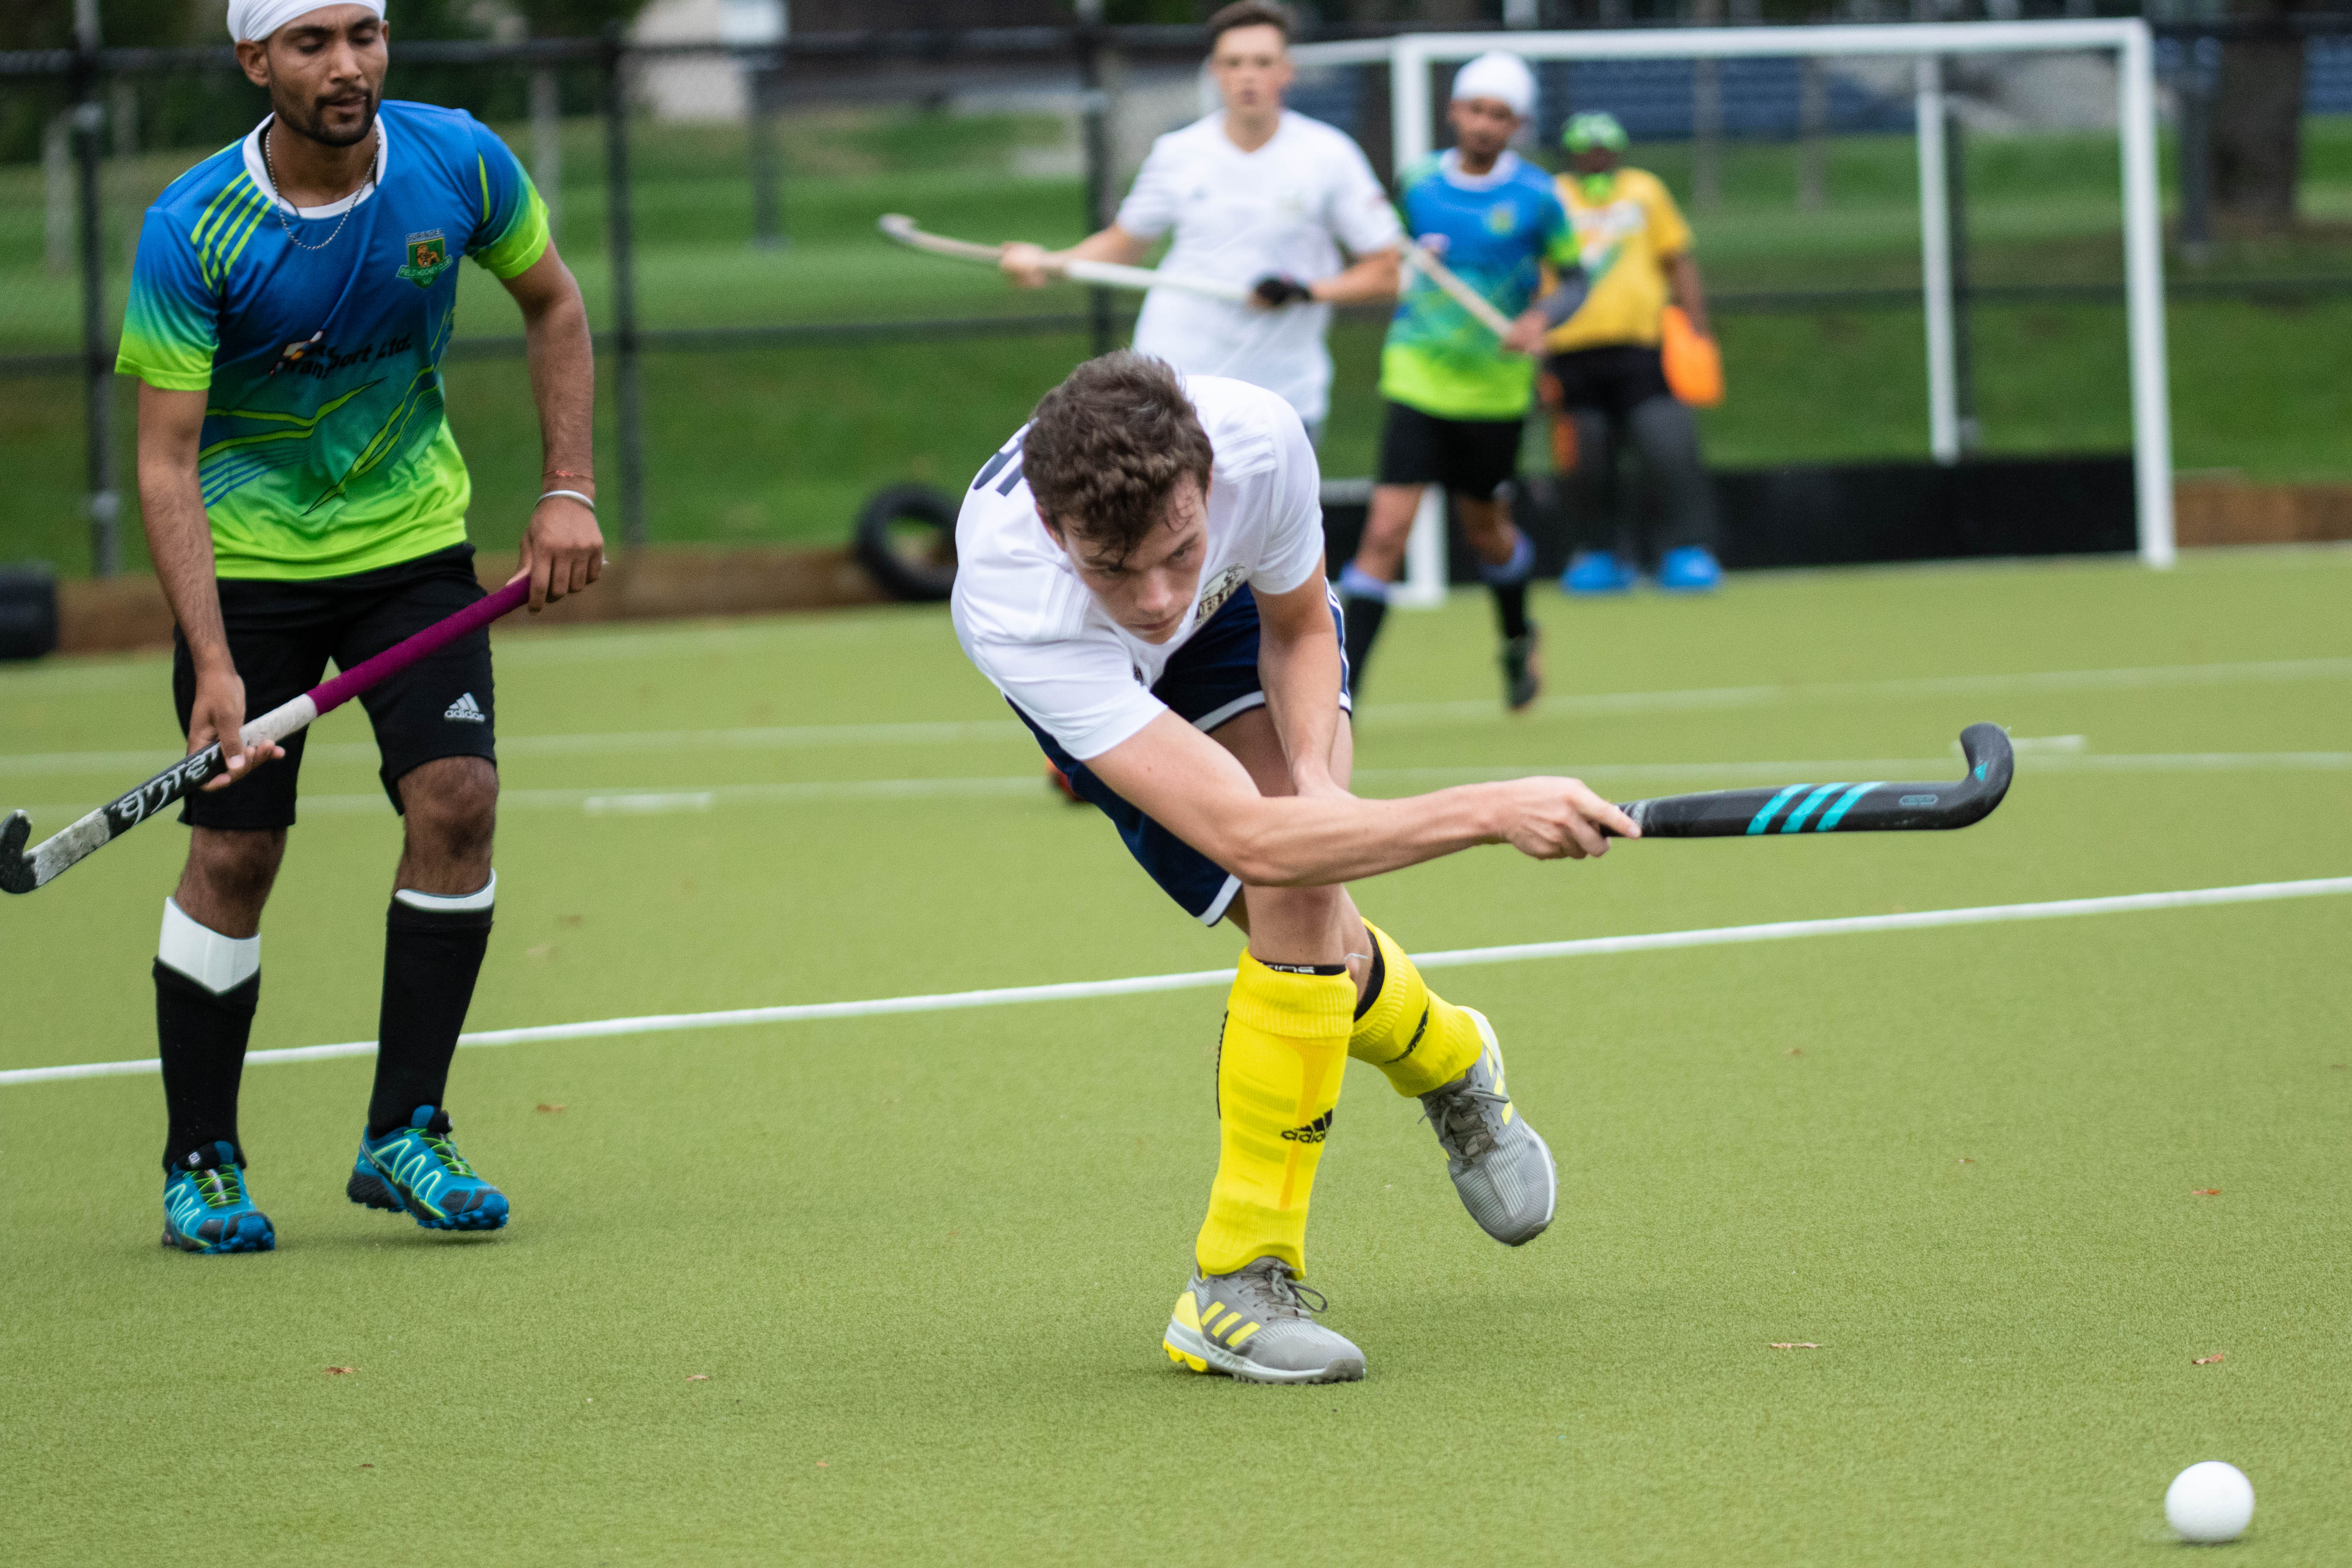 Second-year defender Cole Hendy makes a pass at Sunday's game.